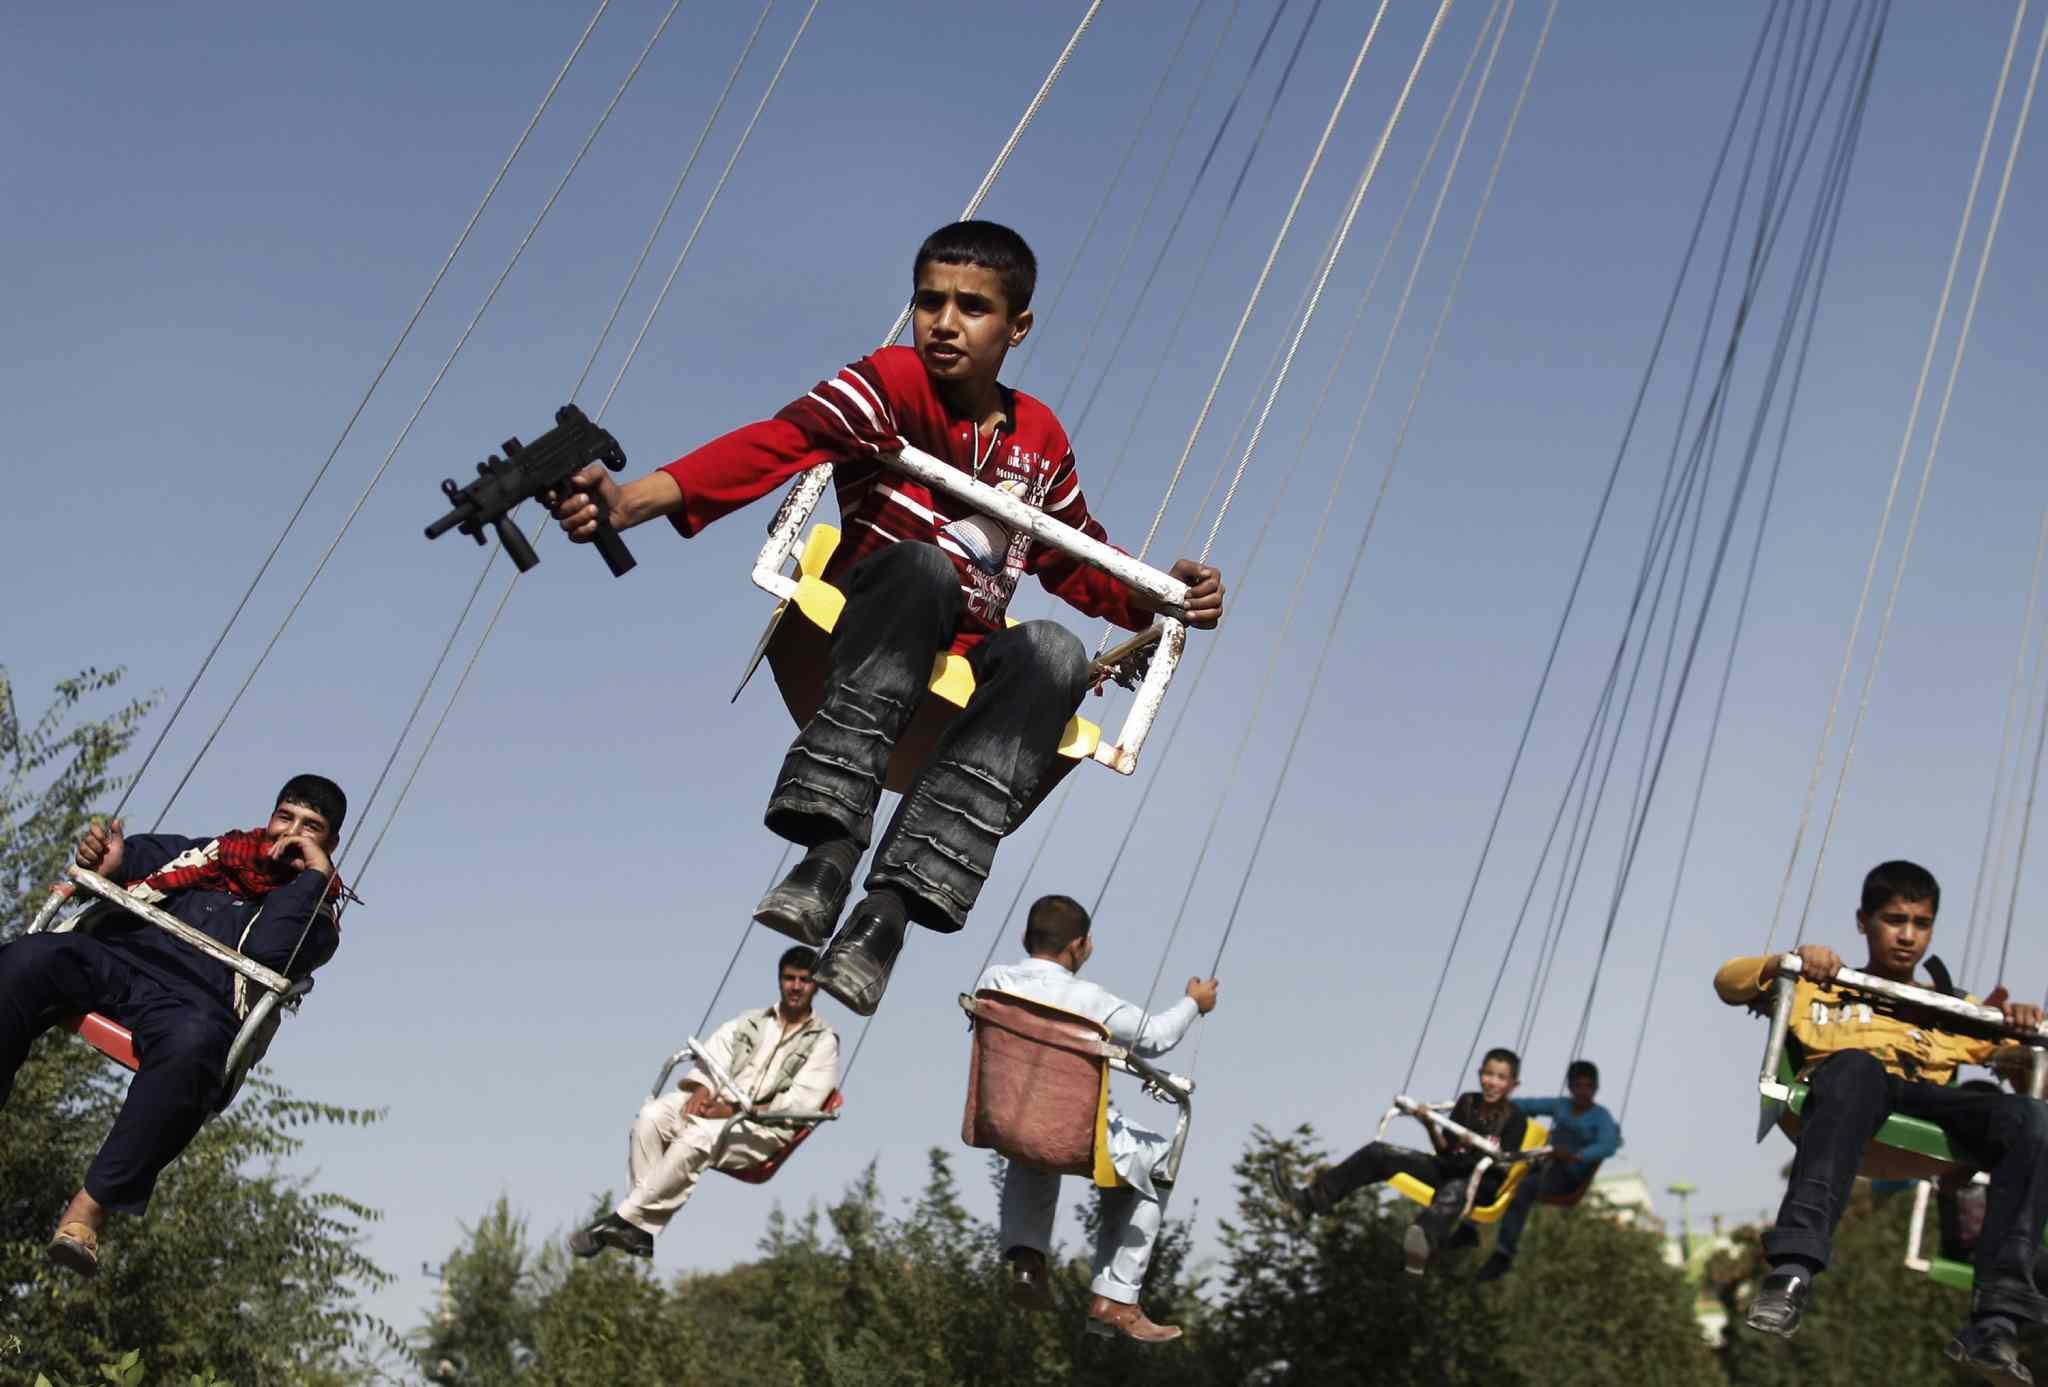 Sept. 20, 2009: An Afghan boy holds a toy gun as he enjoys a ride with others on a merry-go-round to celebrate the Eid al-Fitr festival, in Kabul, Afghanistan.